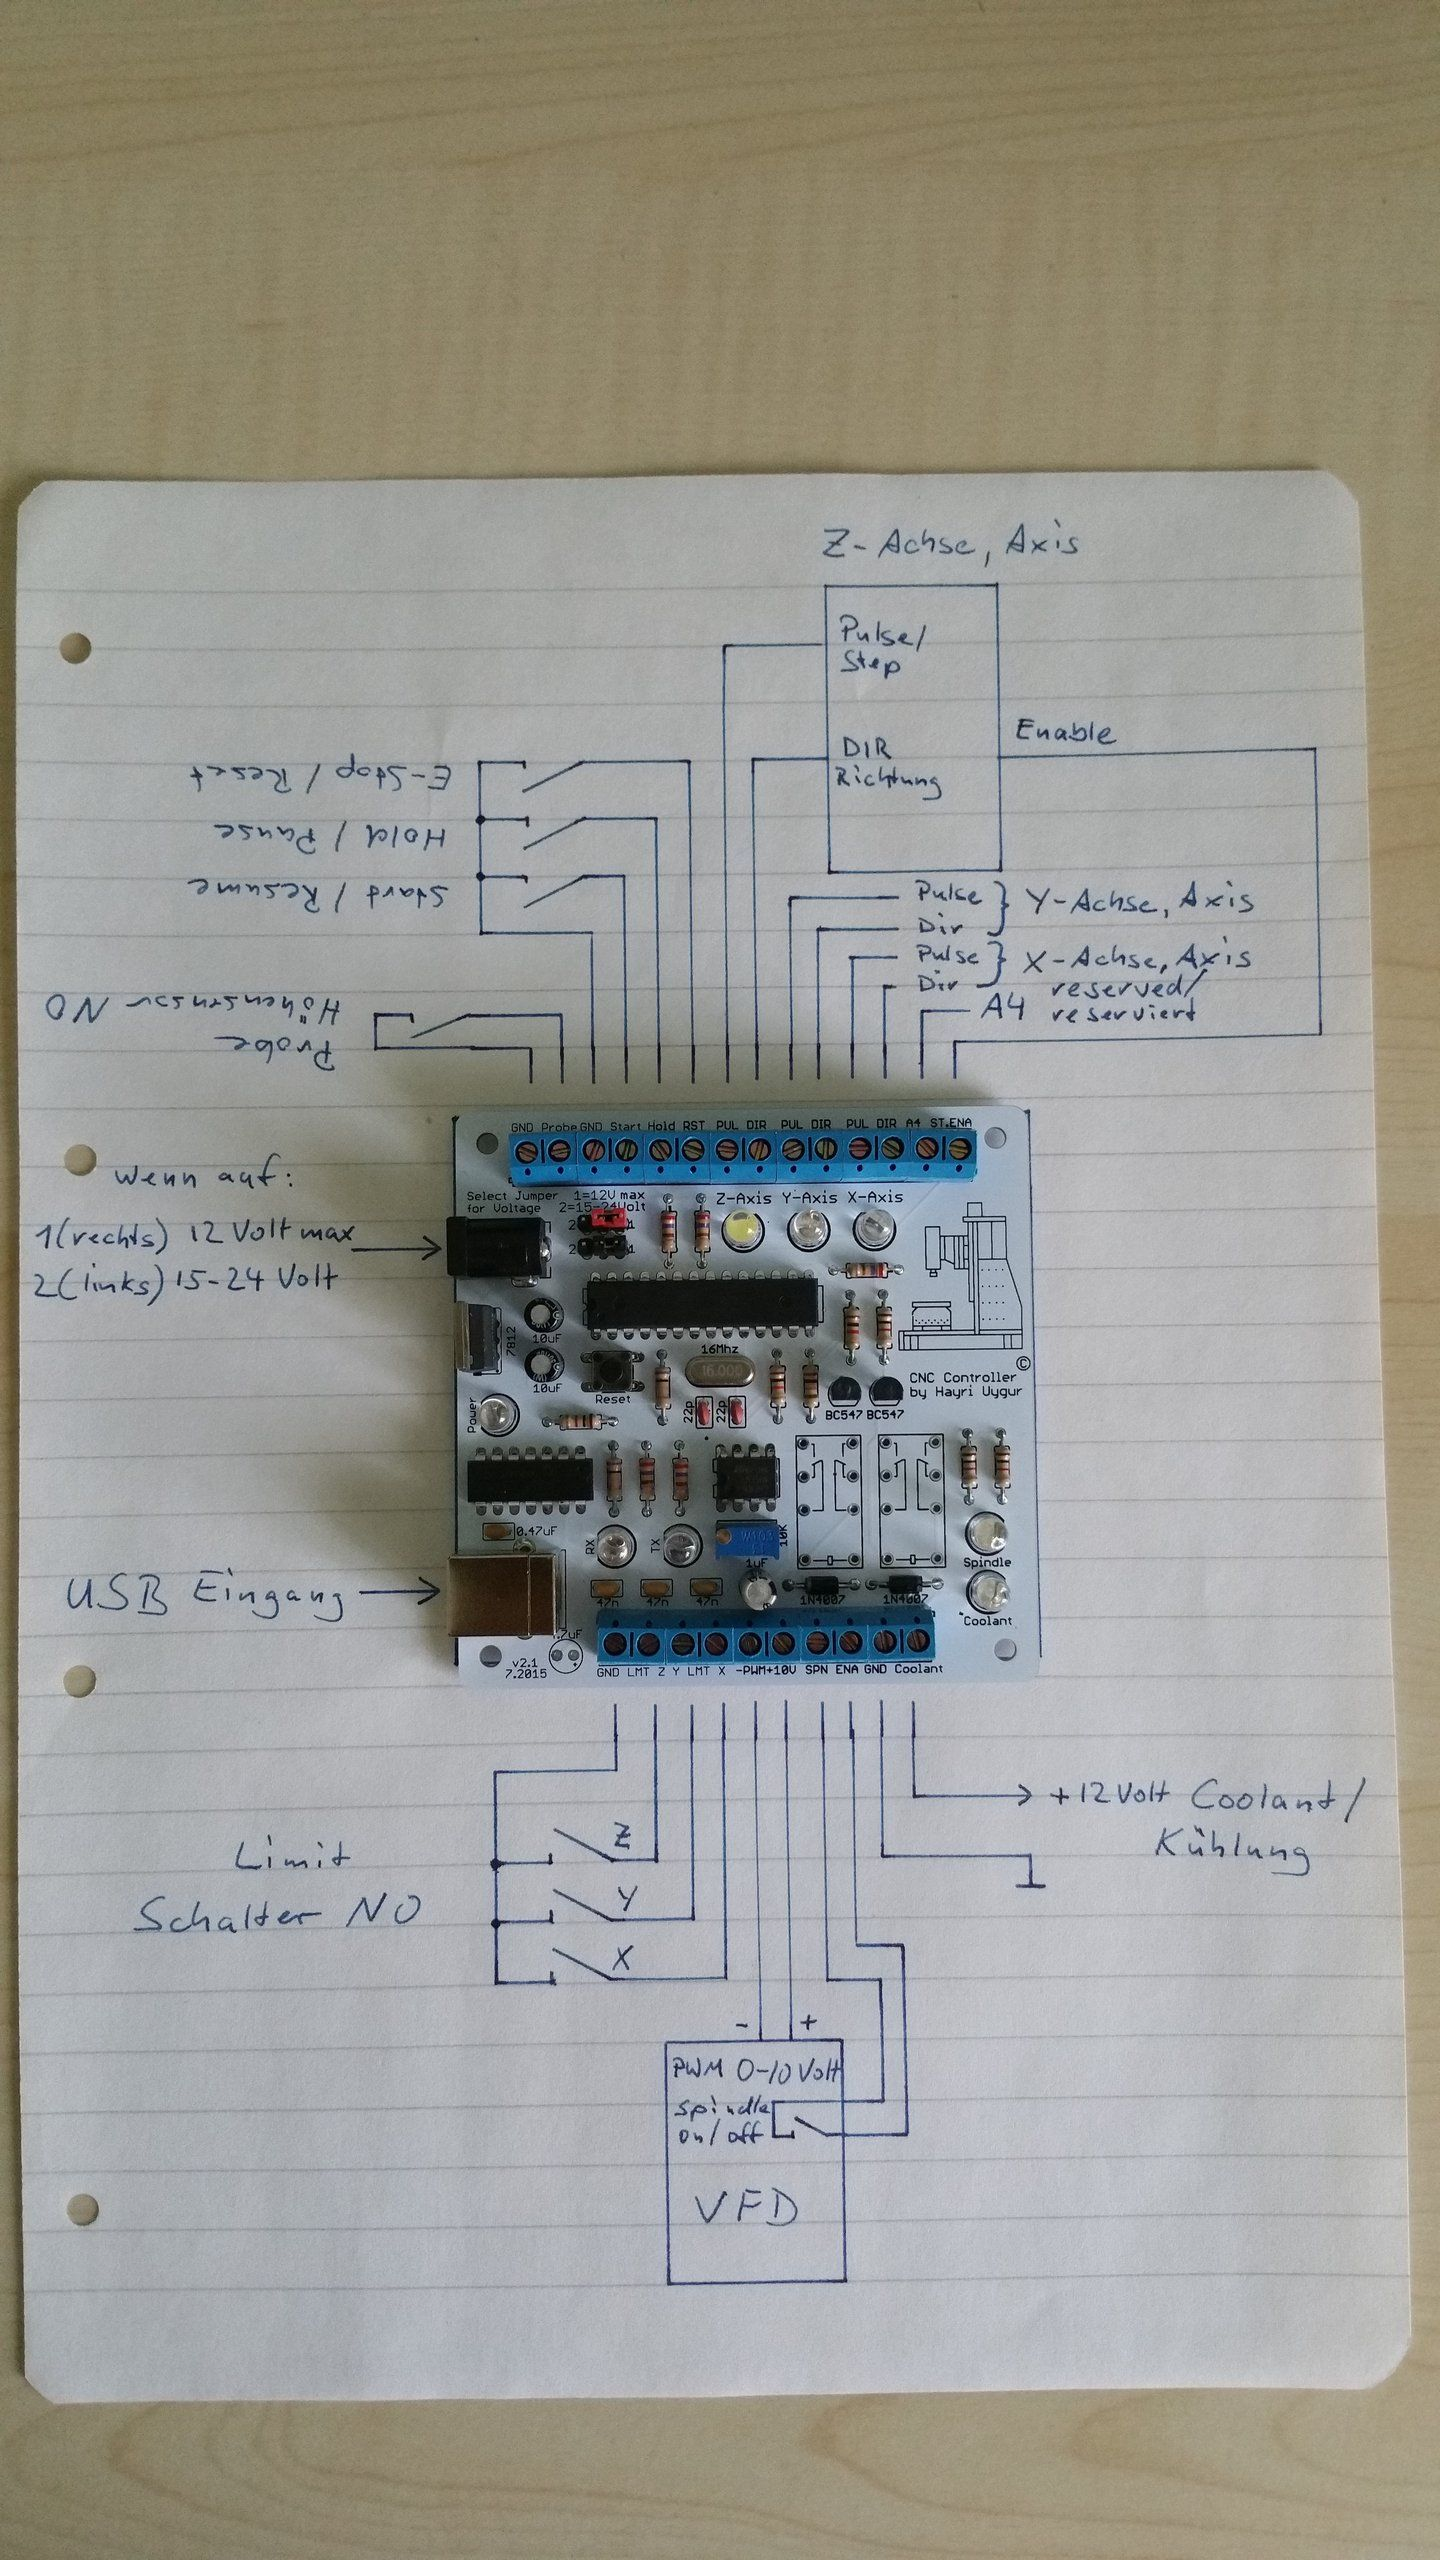 hight resolution of phoenix usb cnc controller with pwm output